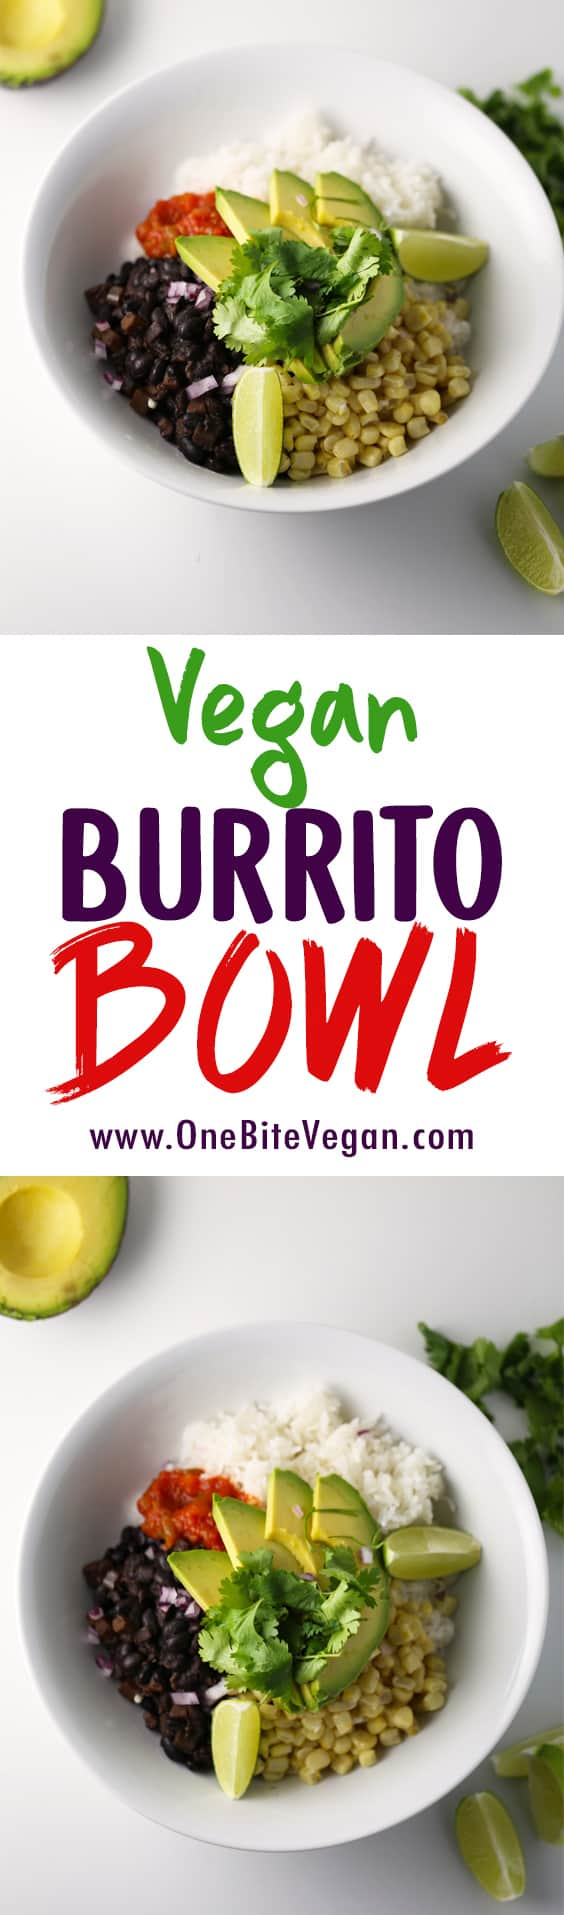 Vegan burrito bowl. Black beans, rice, corn, diced red onion, salsa, avocado, lime, and cilantro. Easy to make and is a great way to use up leftovers.